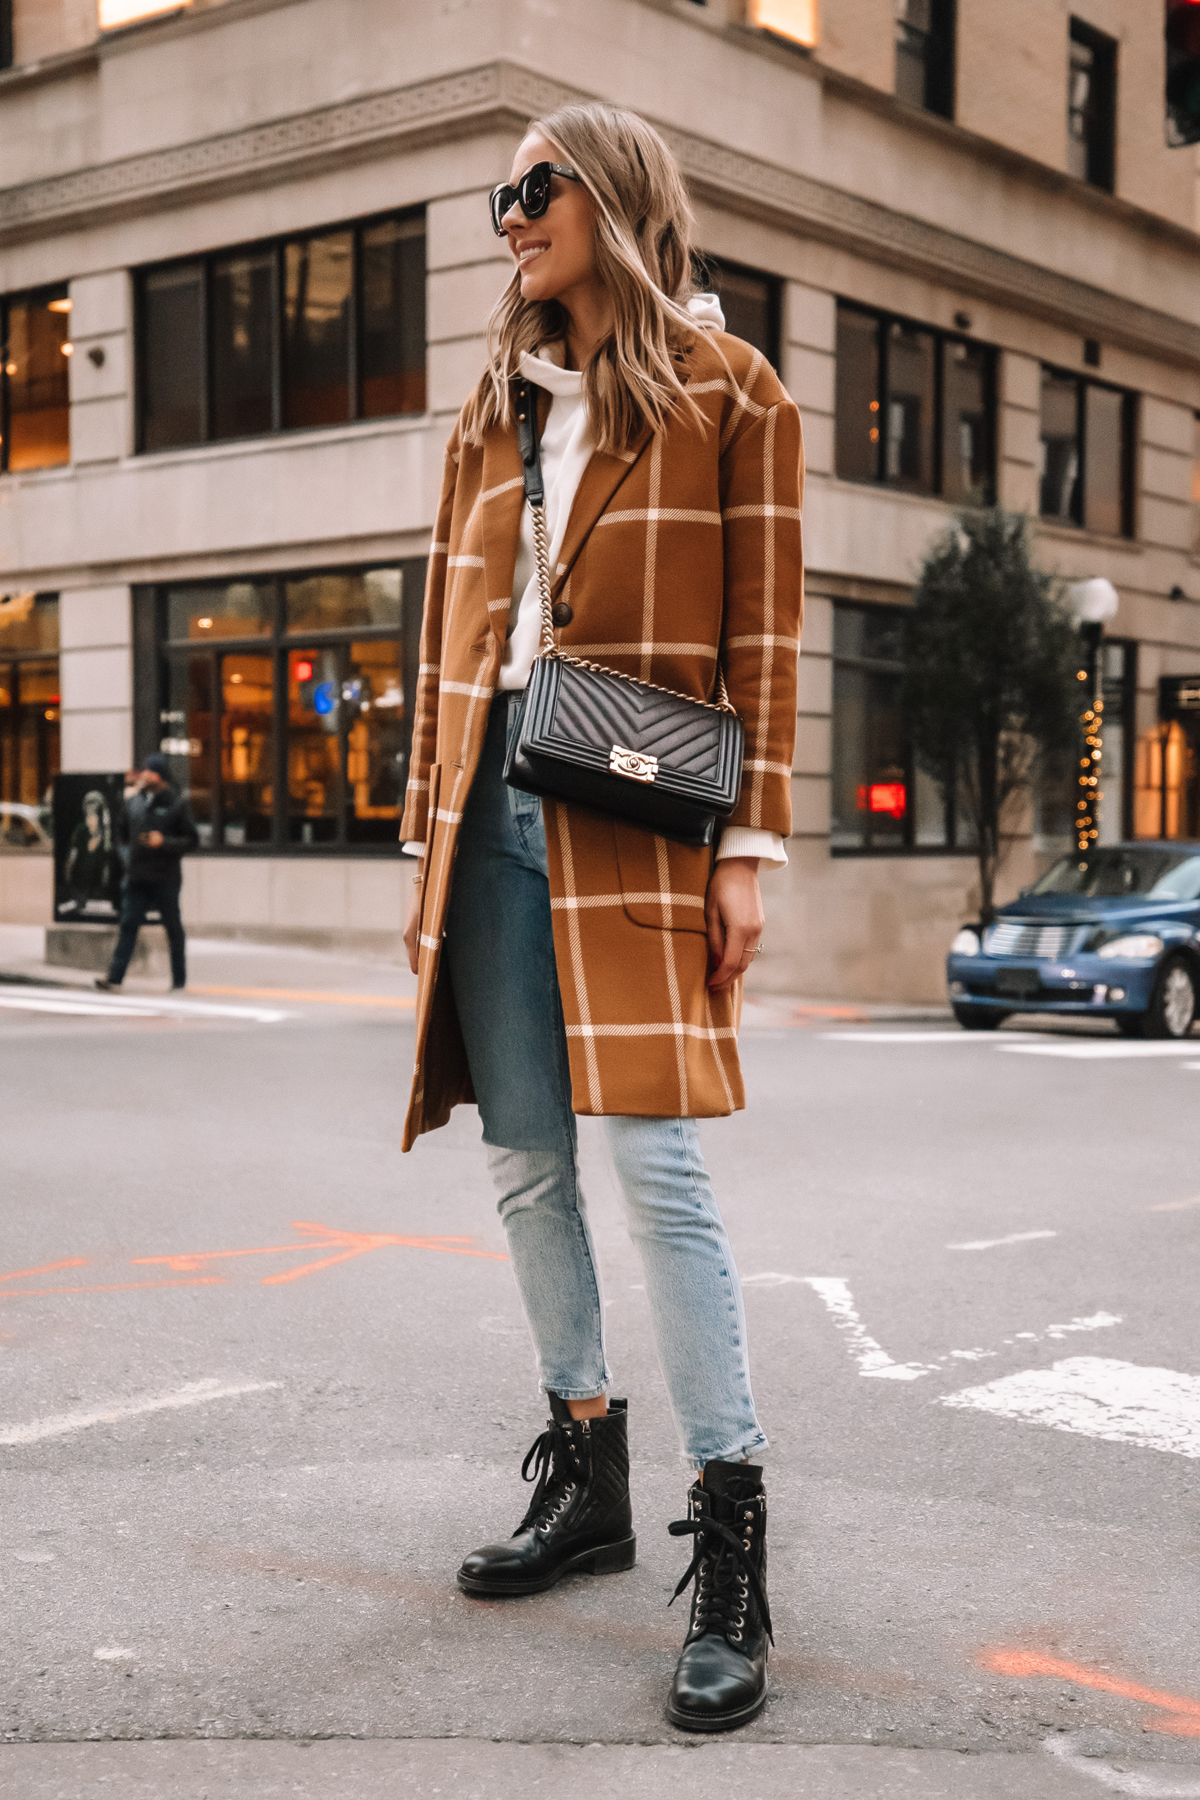 Fashion Jackson Madewell Camel Plaid Coat Levis Jeans Combat Boots Street Style Outfit 2